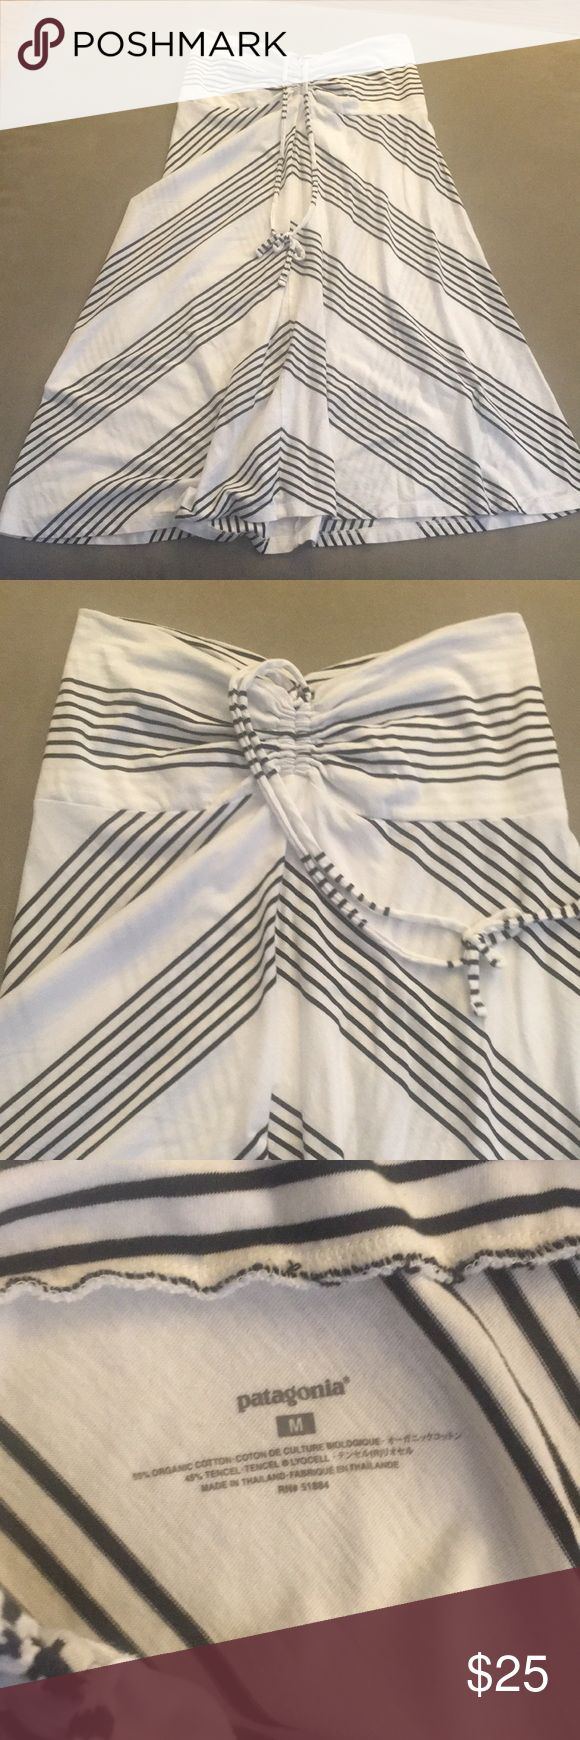 NEW Patagonia black and white dress size medium NEW Black and white Patagonia dress size medium Patagonia Dresses